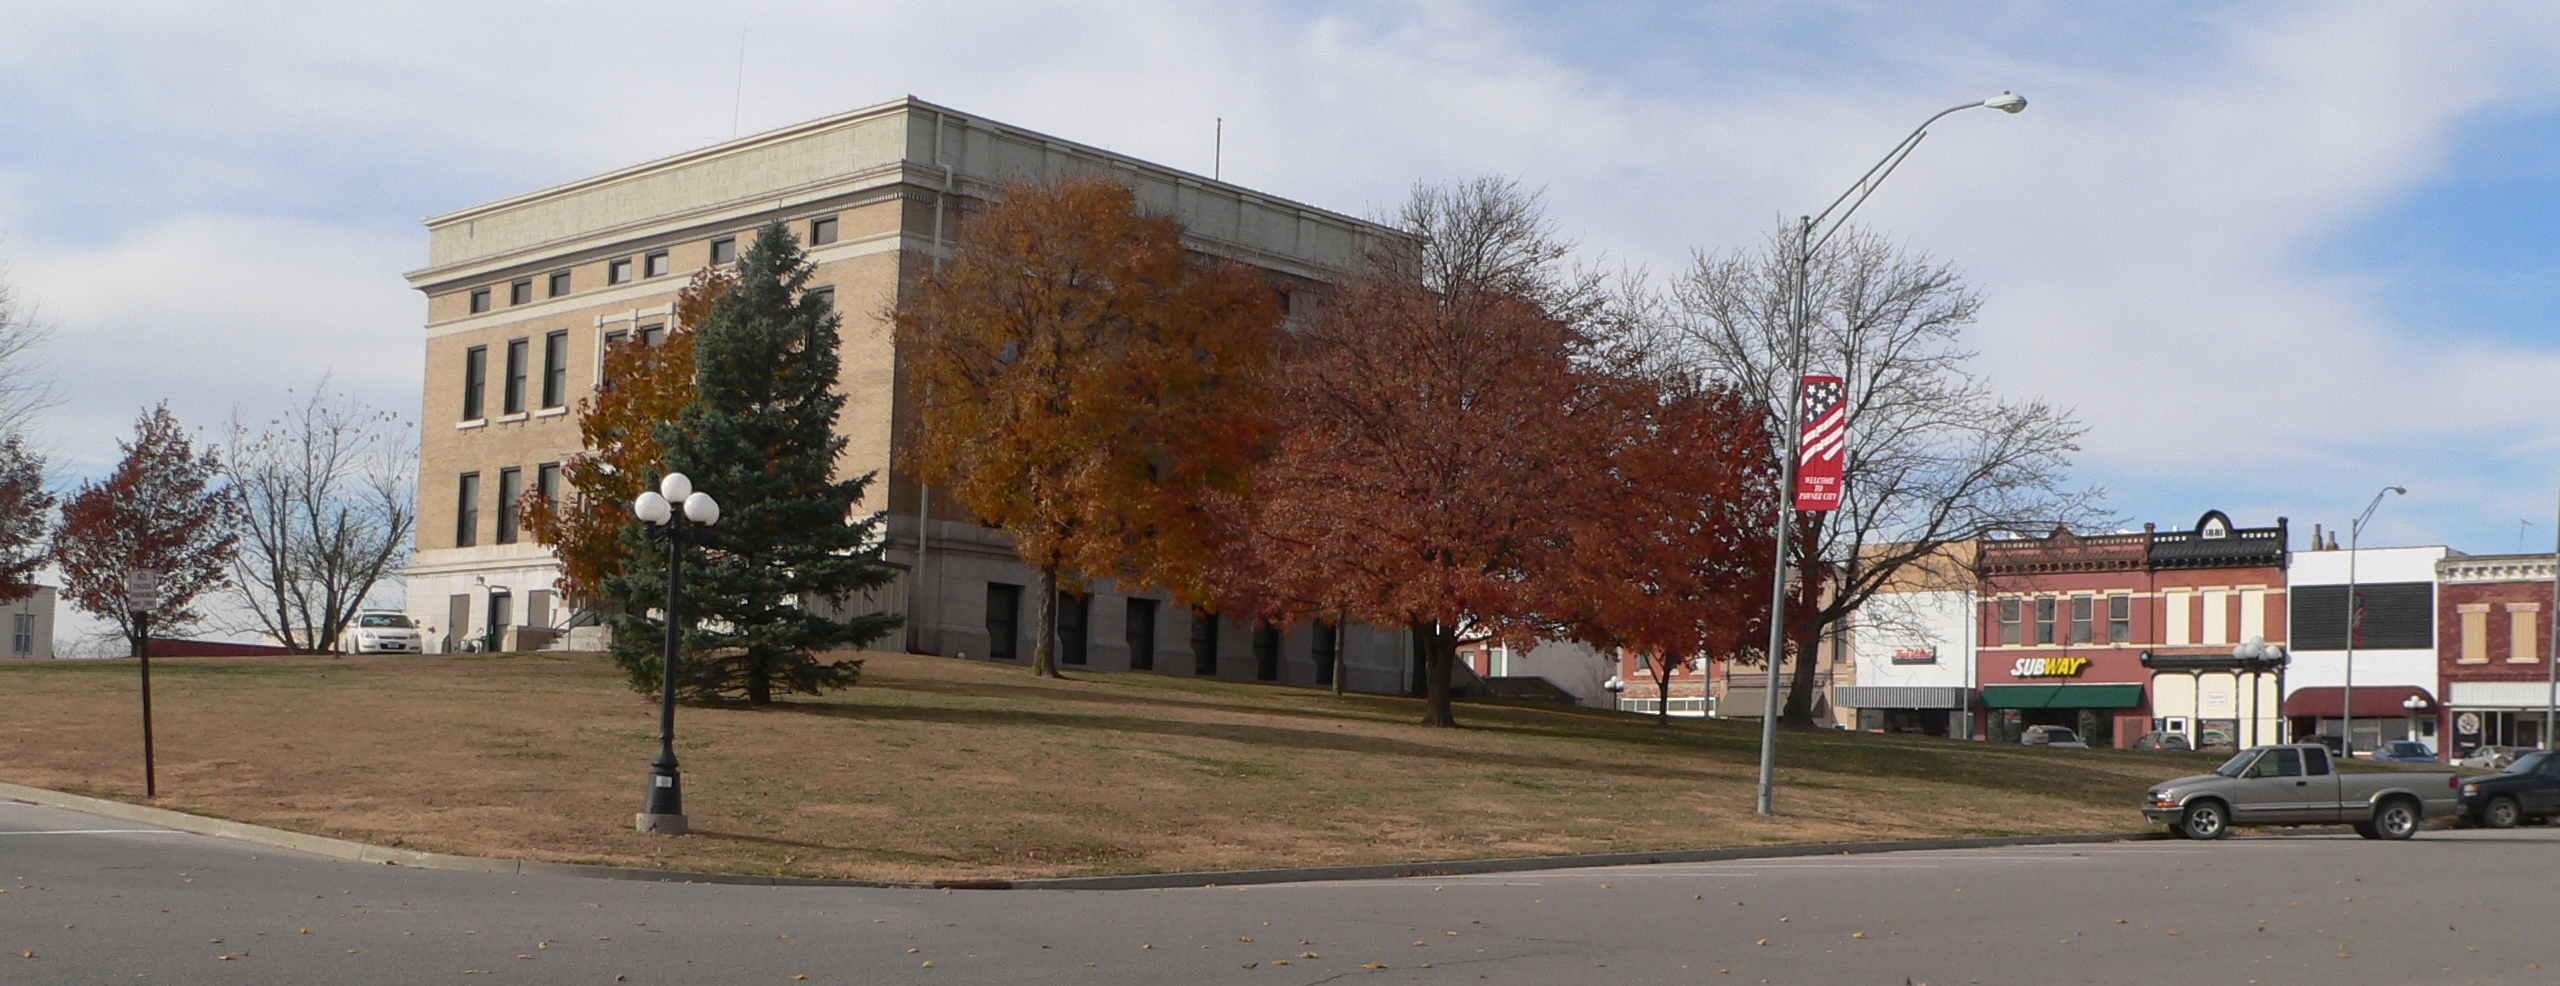 Pawnee City Nebraska >> File Pawnee City Nebraska Ne From 5th And G Jpg Wikimedia Commons